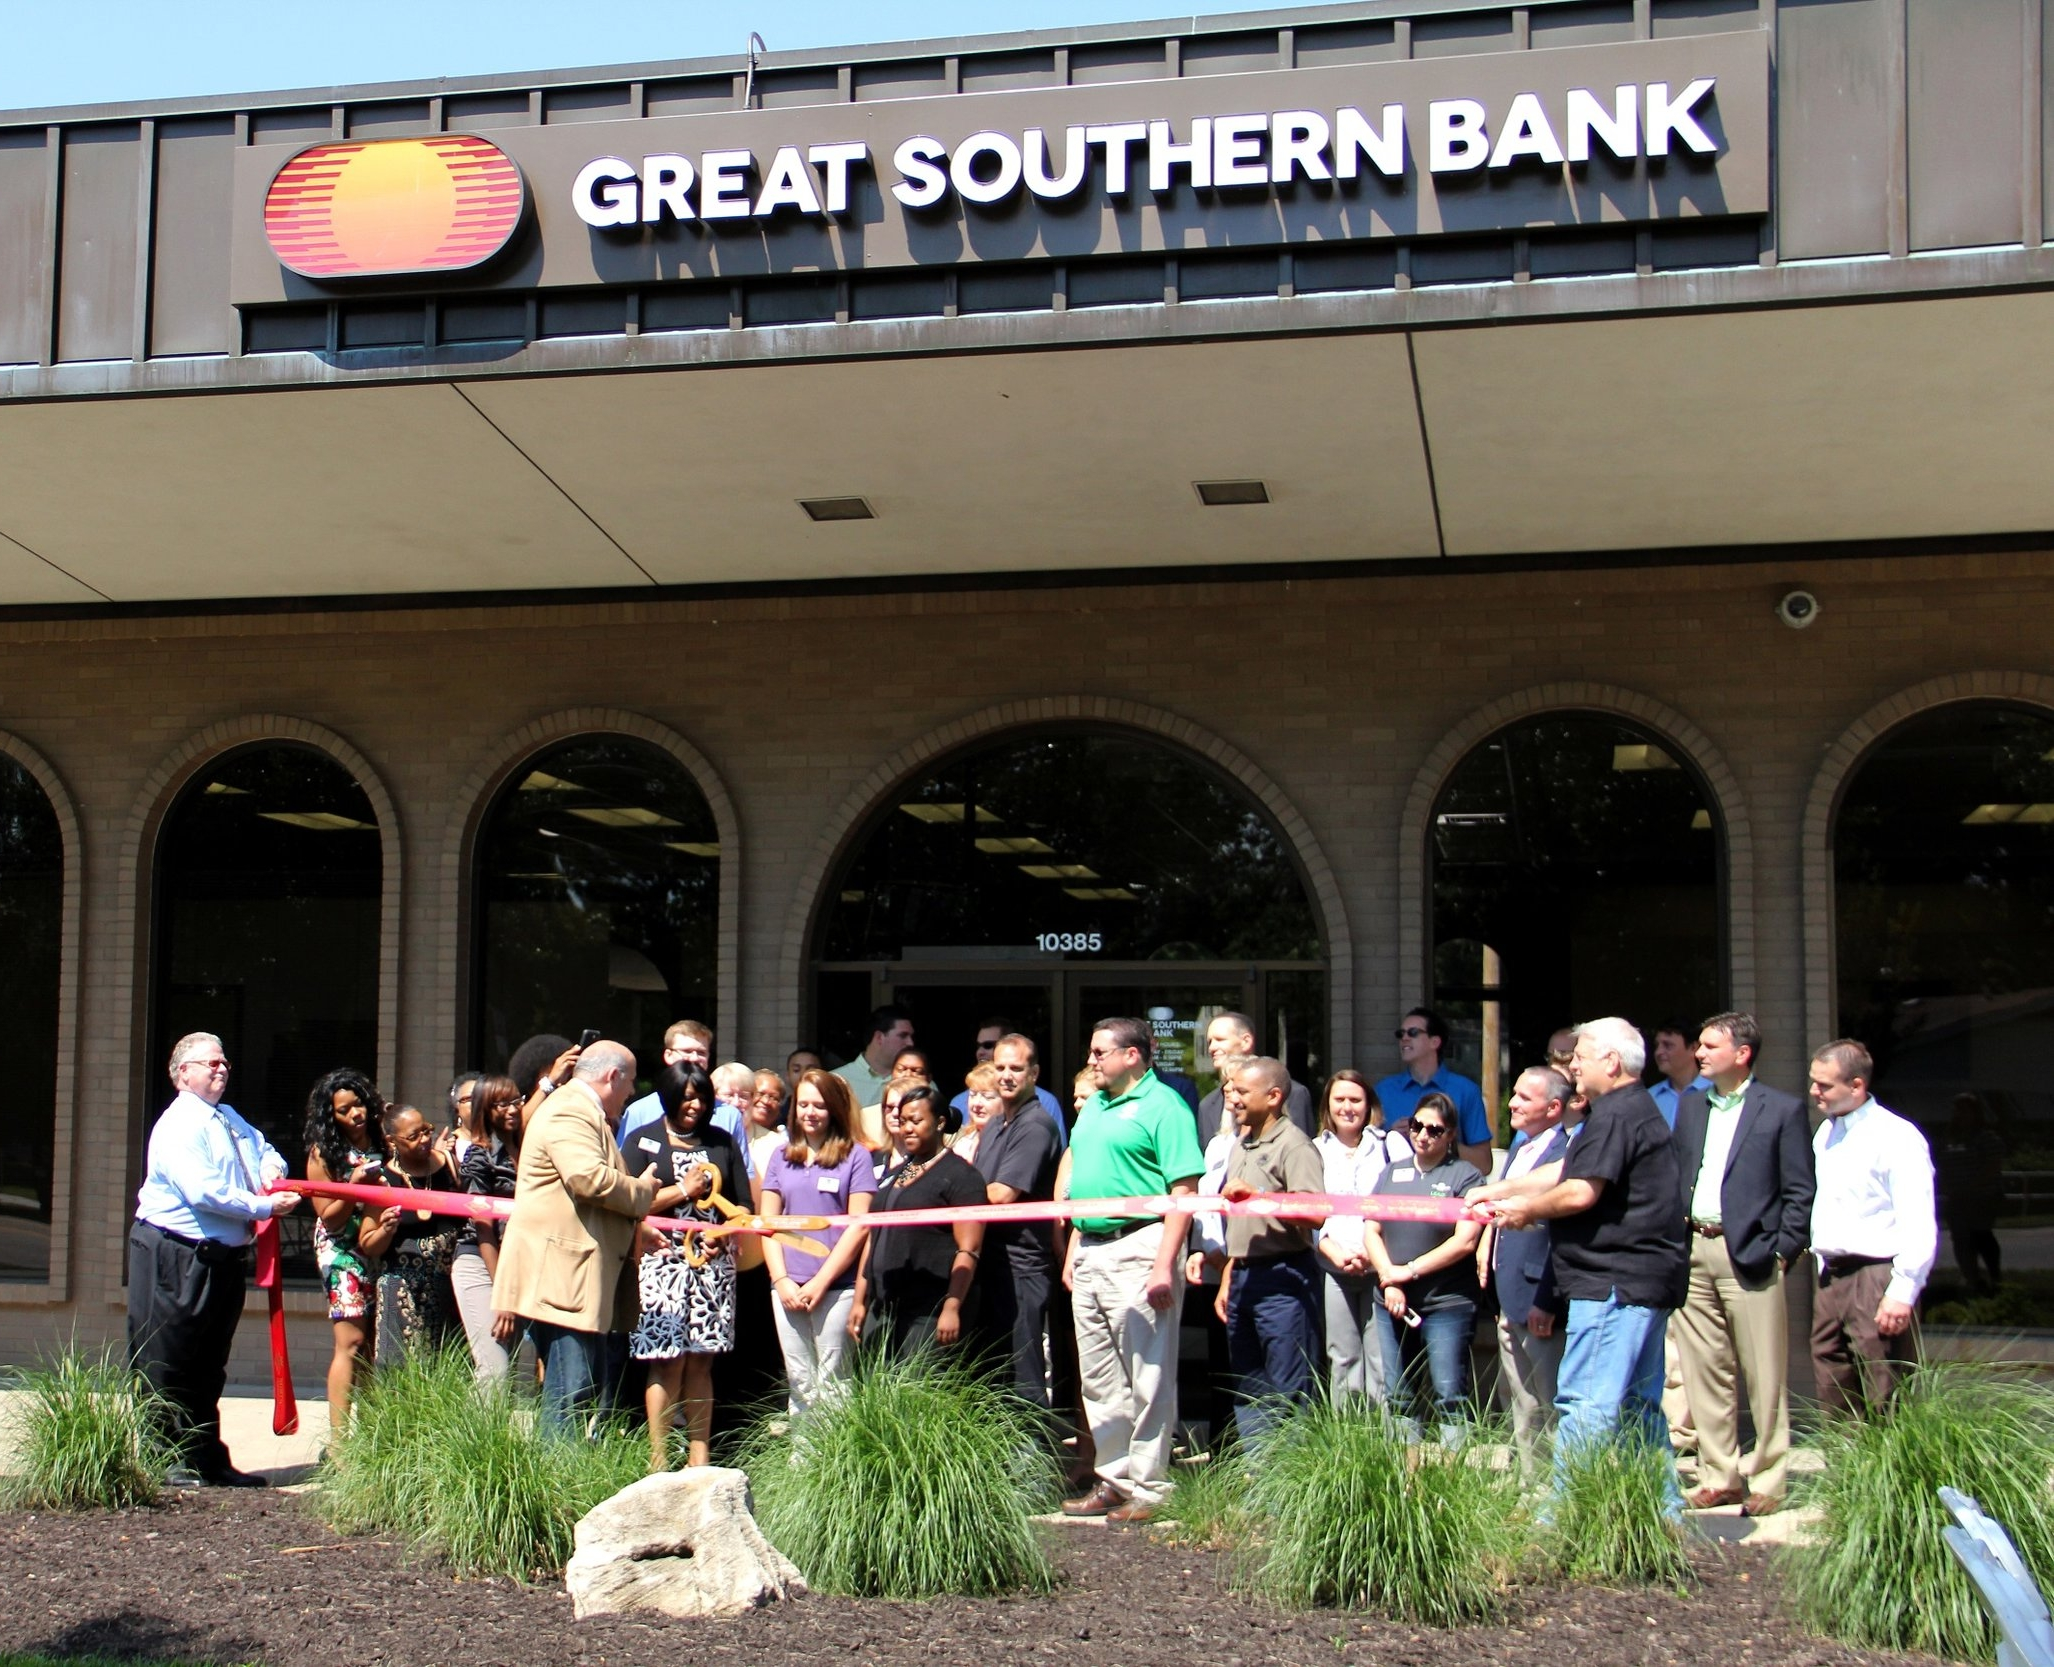 Great Southern Bank branch in Ferguson, Missouri